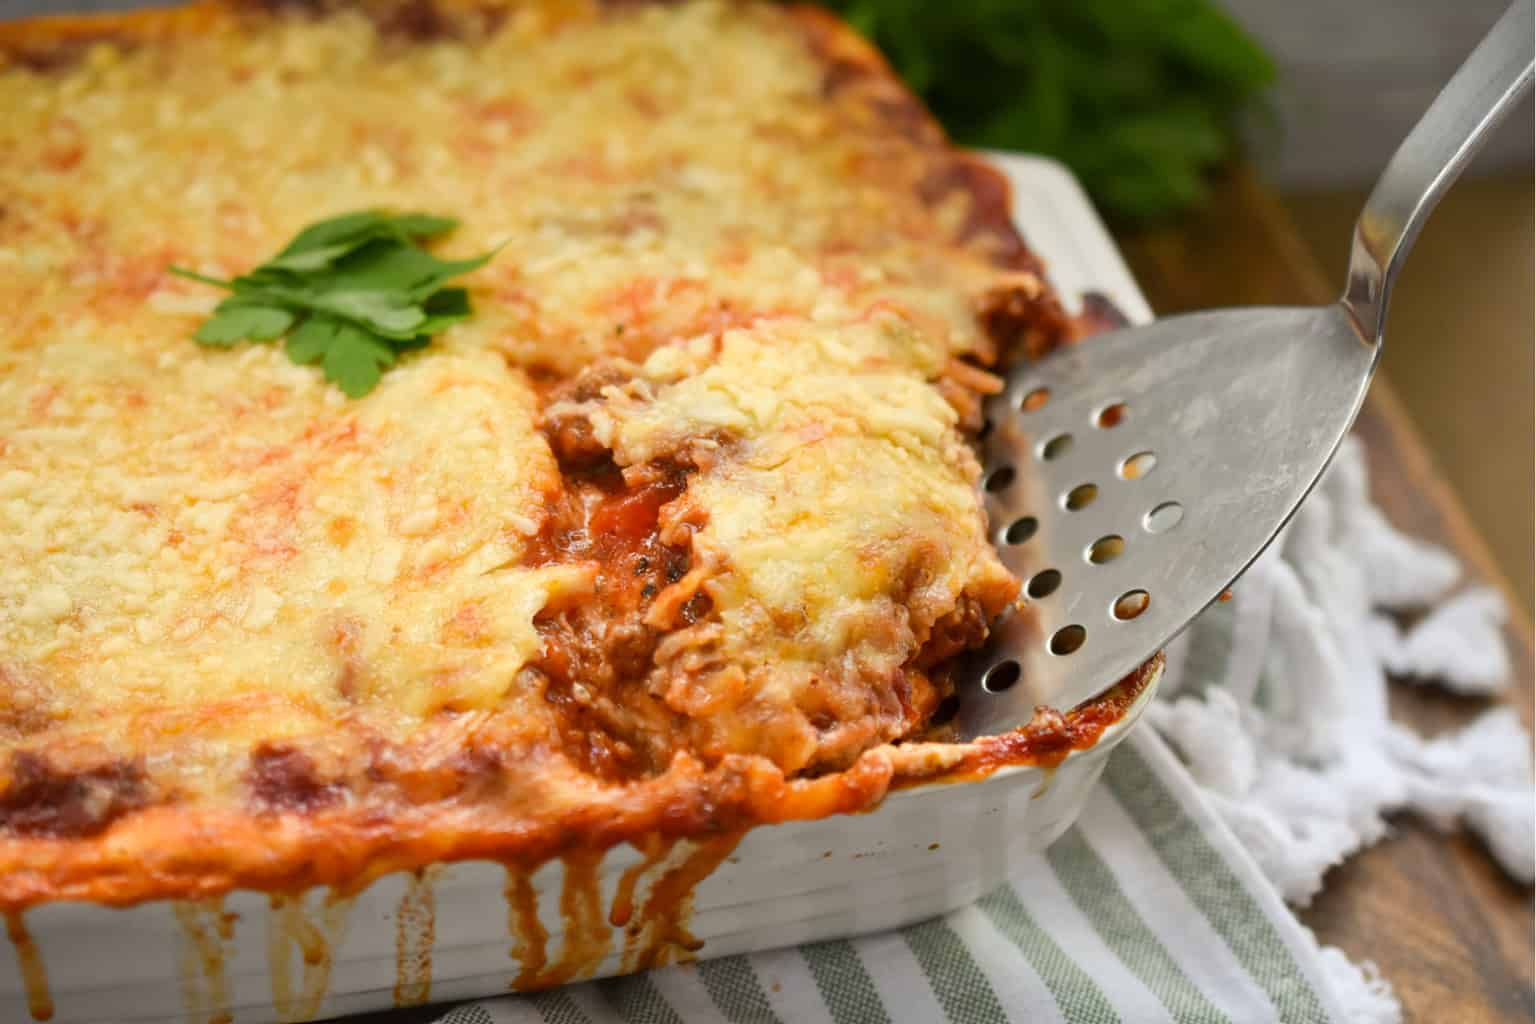 keto crepini lasagna being served from a white square casserole dish